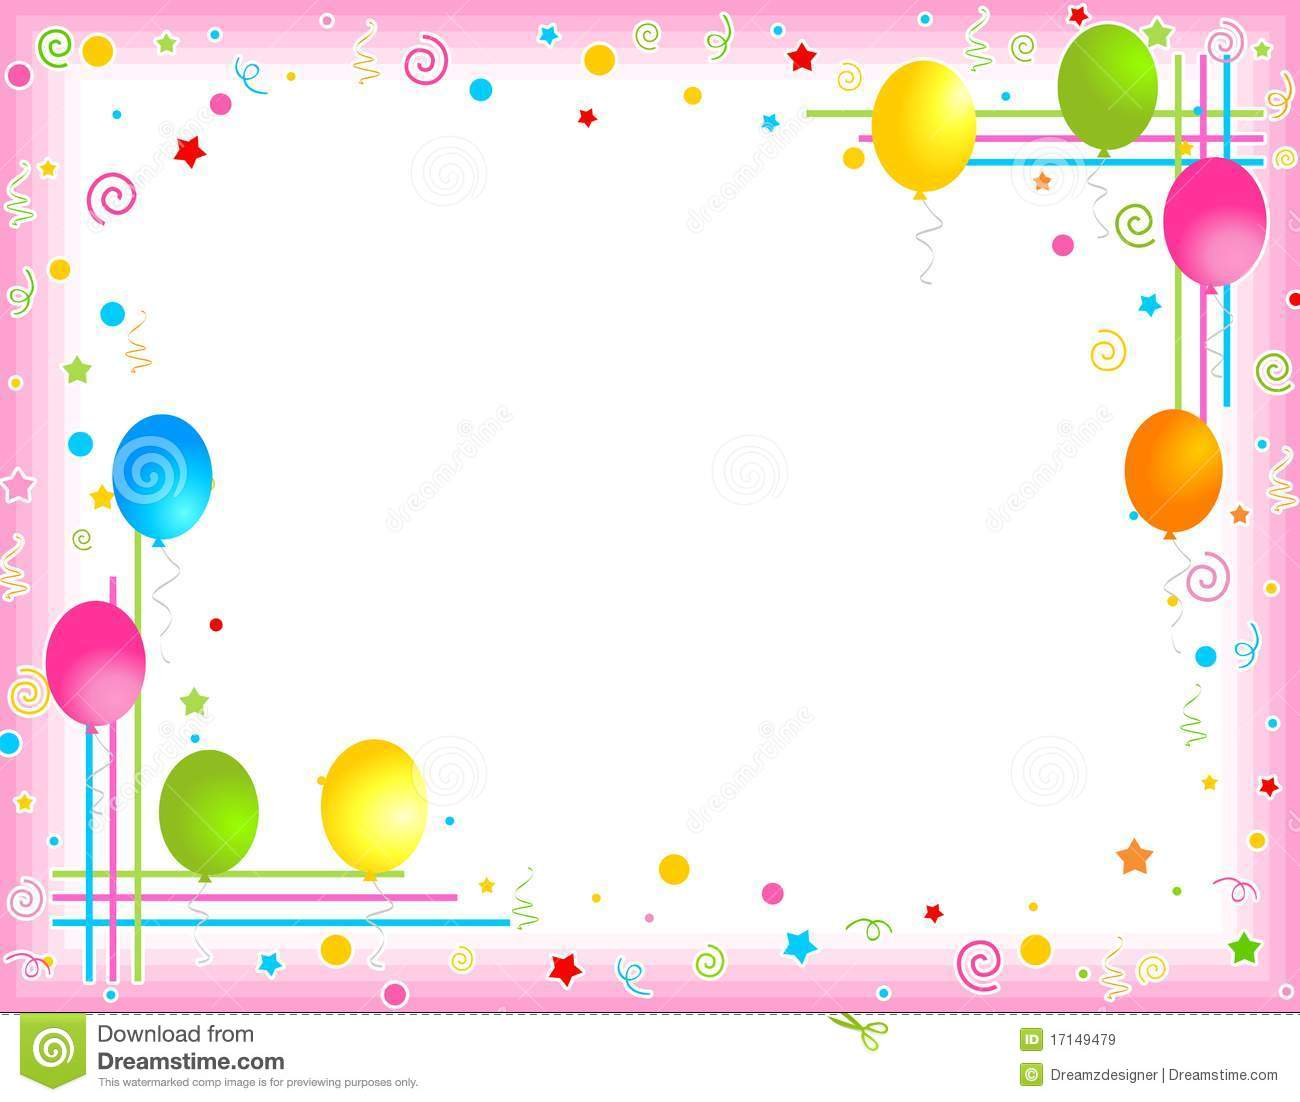 colorful birthday borders ; colorful-balloons-border-party-frame-17149479